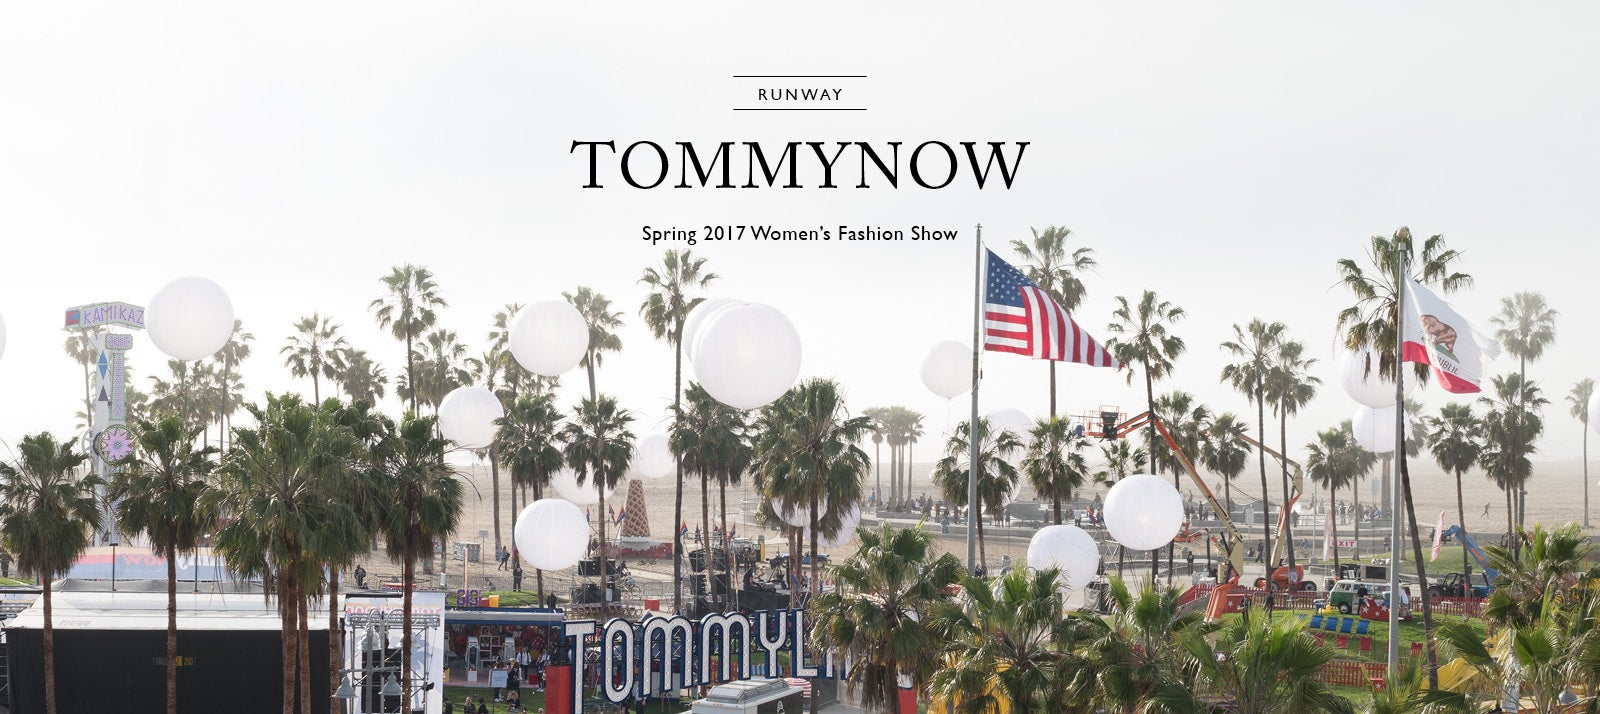 Aerial view of palm trees, runway and American flags from 'Tommyland' in Los Angeles- the Spring 2017 Fashion Show